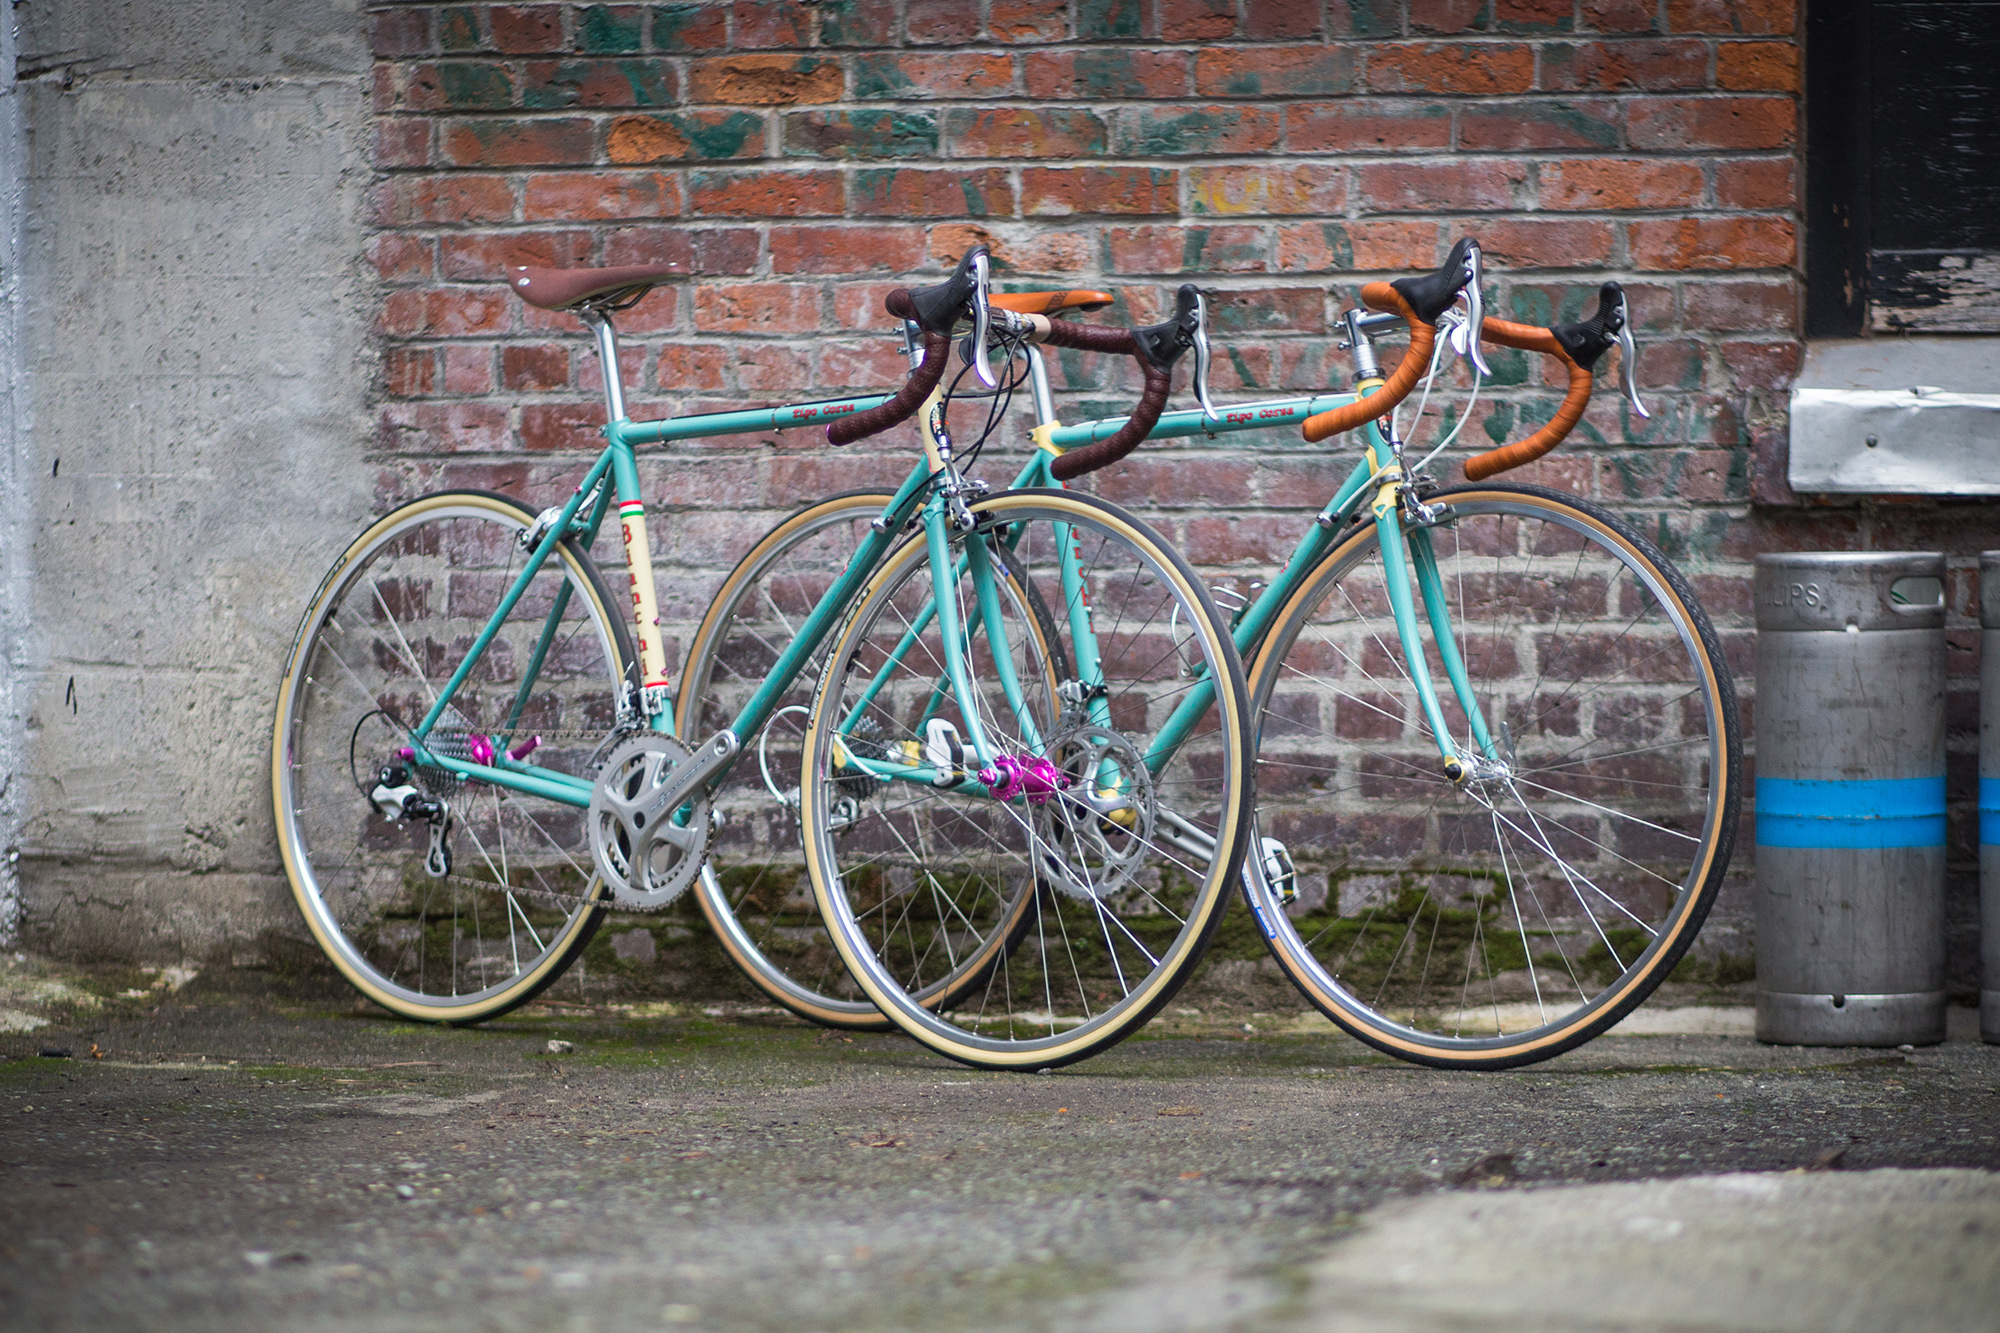 Bike Check: Seeing Double – Shawn and Jyoti's Tipo Corsas